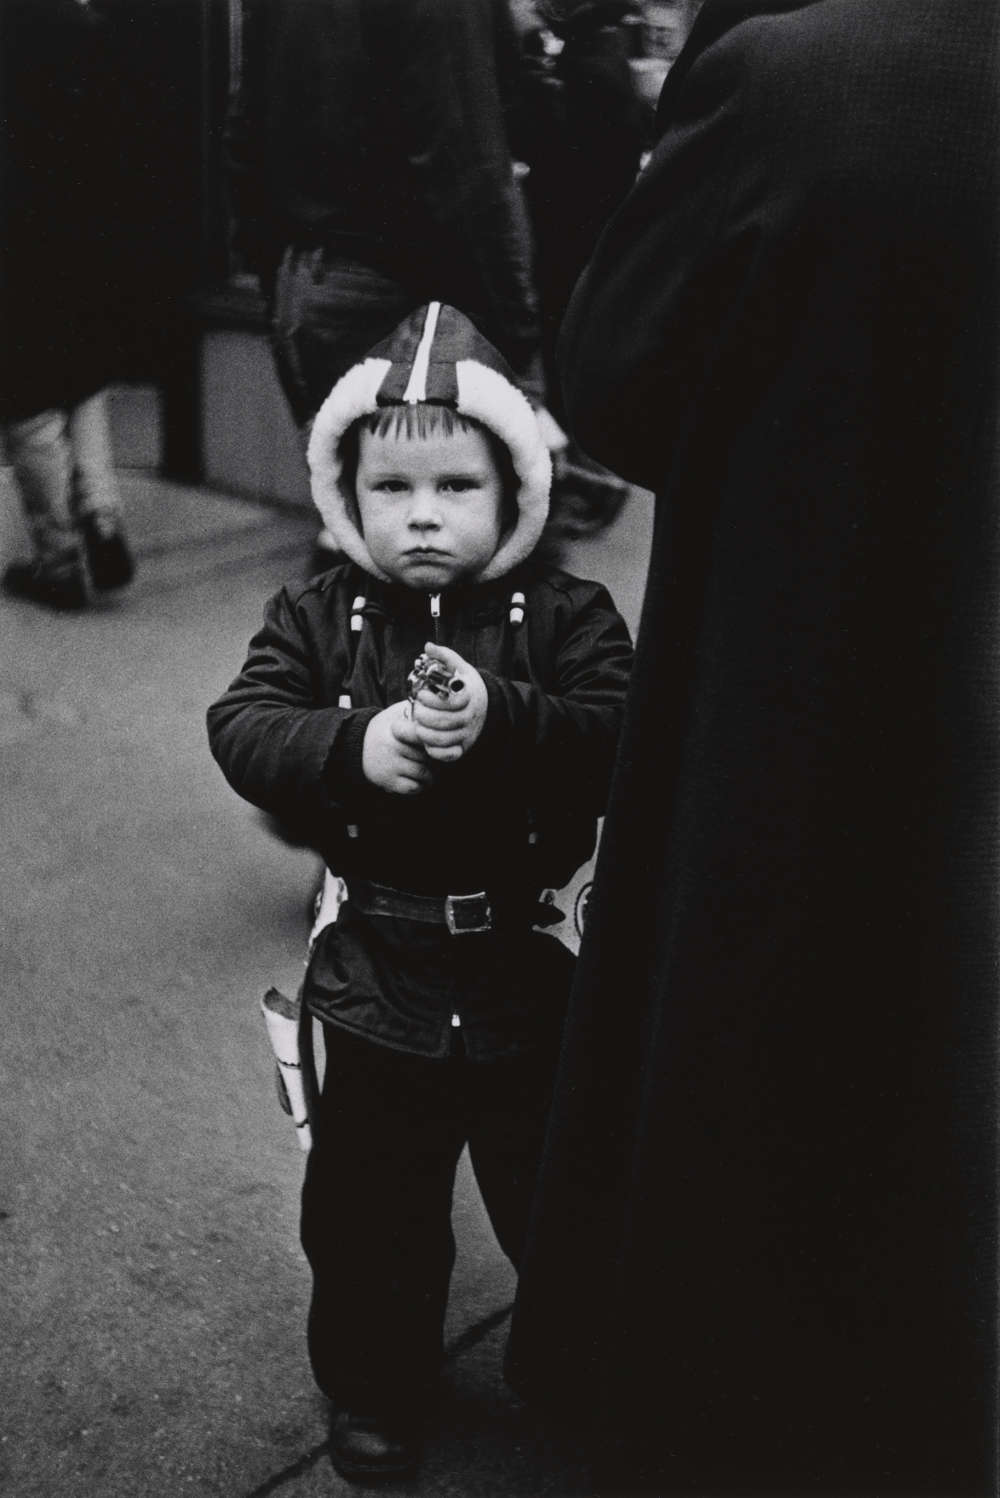 Kid in a hooded jacket aiming a gun, N.Y.C. 1957. 8 1/2 × 5 13/16 in. (21.6 × 14.7 cm) Gift of Doon Arbus and Amy Arbus, 2007. Courtesy The Metropolitan Museum of Art, New York. Copyright © The Estate of Diane Arbus, LLC. All Rights Reserved